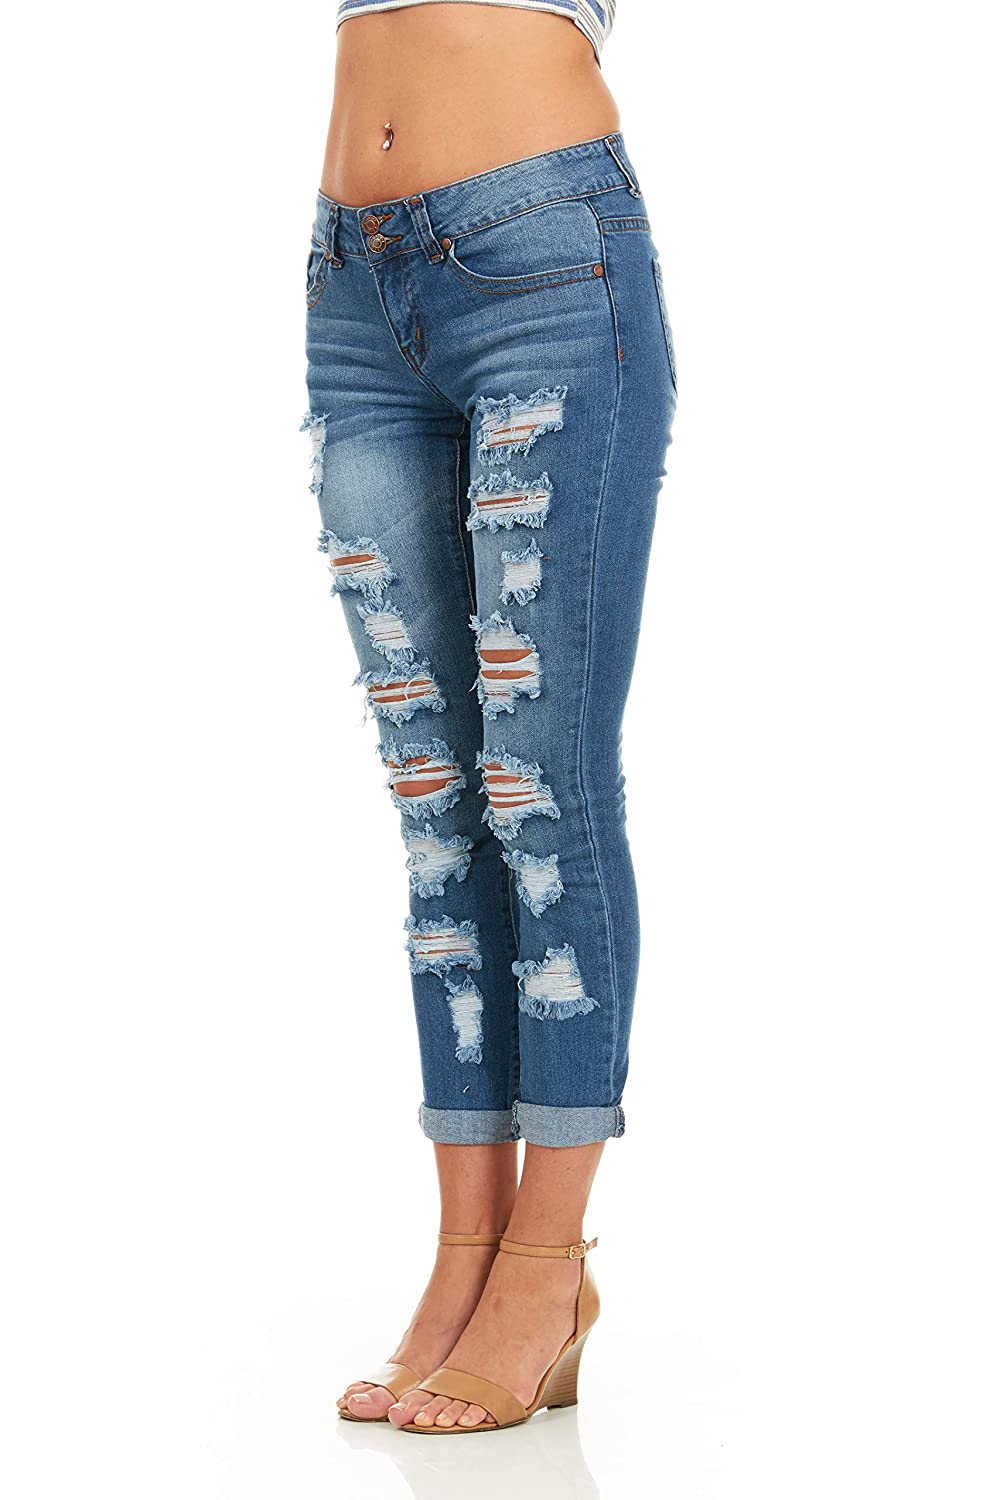 bbba3f6e838 cover girl Skinny Ripped Jeans for Women Distressed Blue, Baby YDX Apparel  larger image